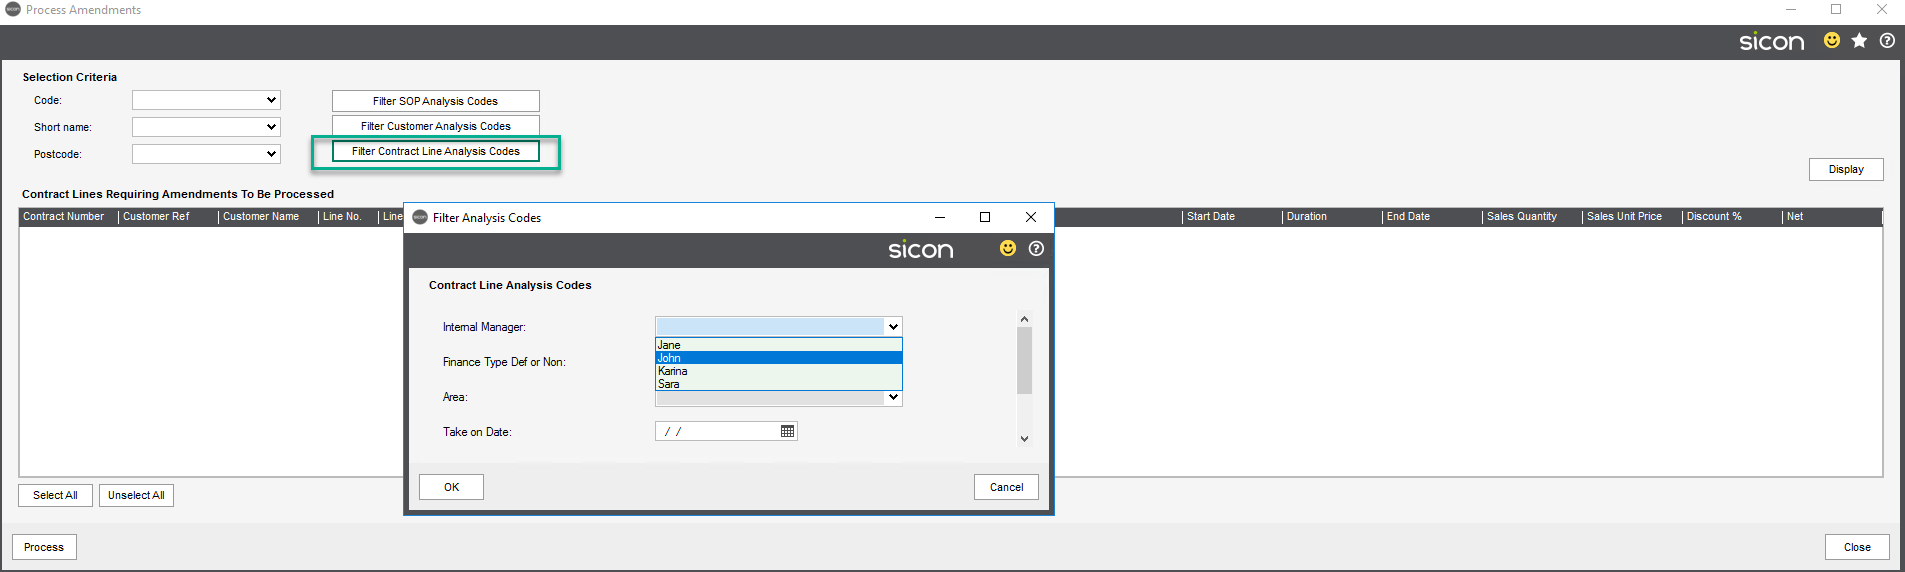 Sicon Contracts Help and User Guide - 3.10 IMAGE 9 CONTRACT LINE FILTER